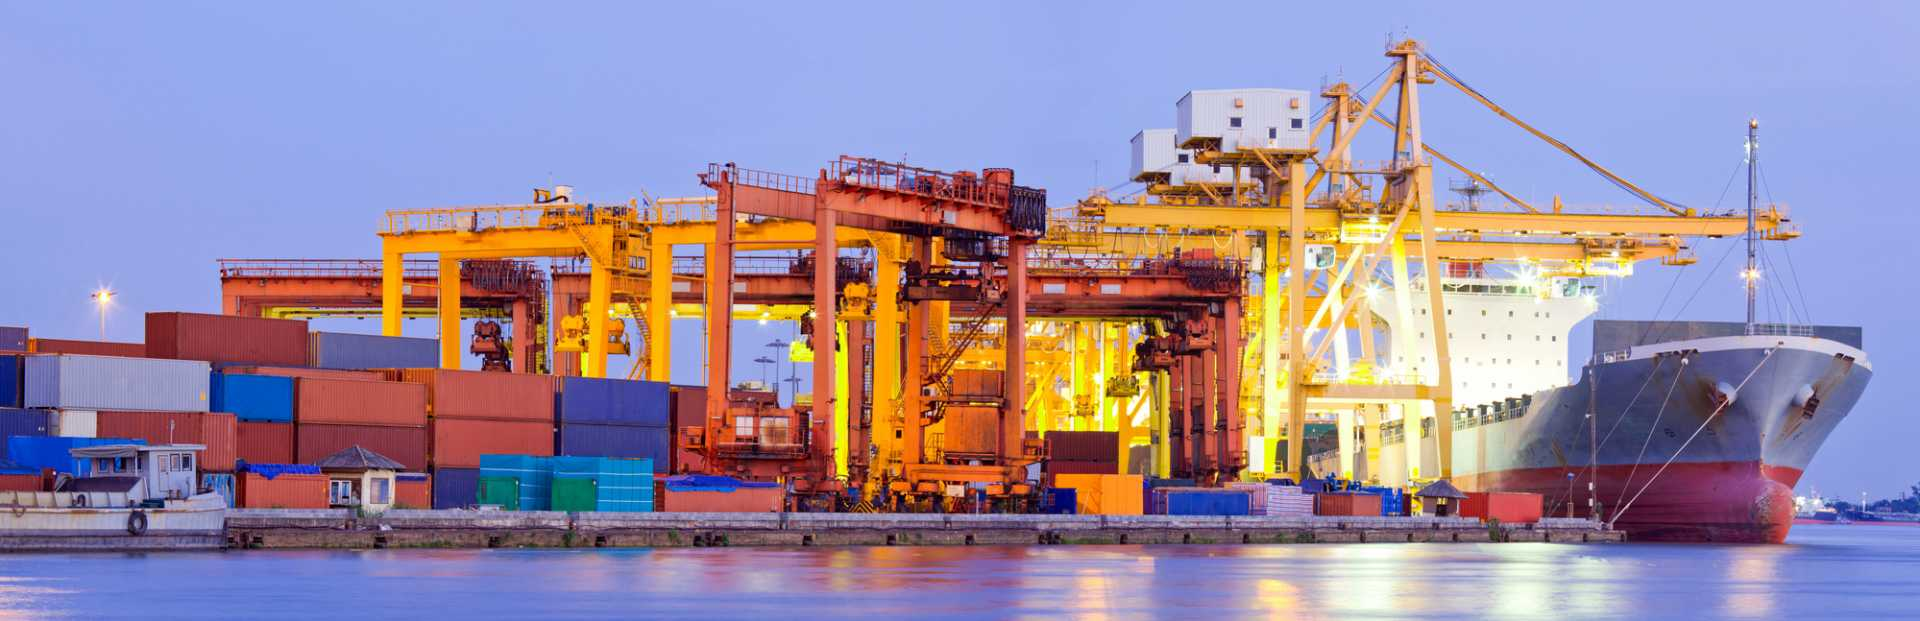 Port Terminal Panorama Industry Global Trade Exports Economy Supply Chain Stock - image courtesy of Depositphotos.